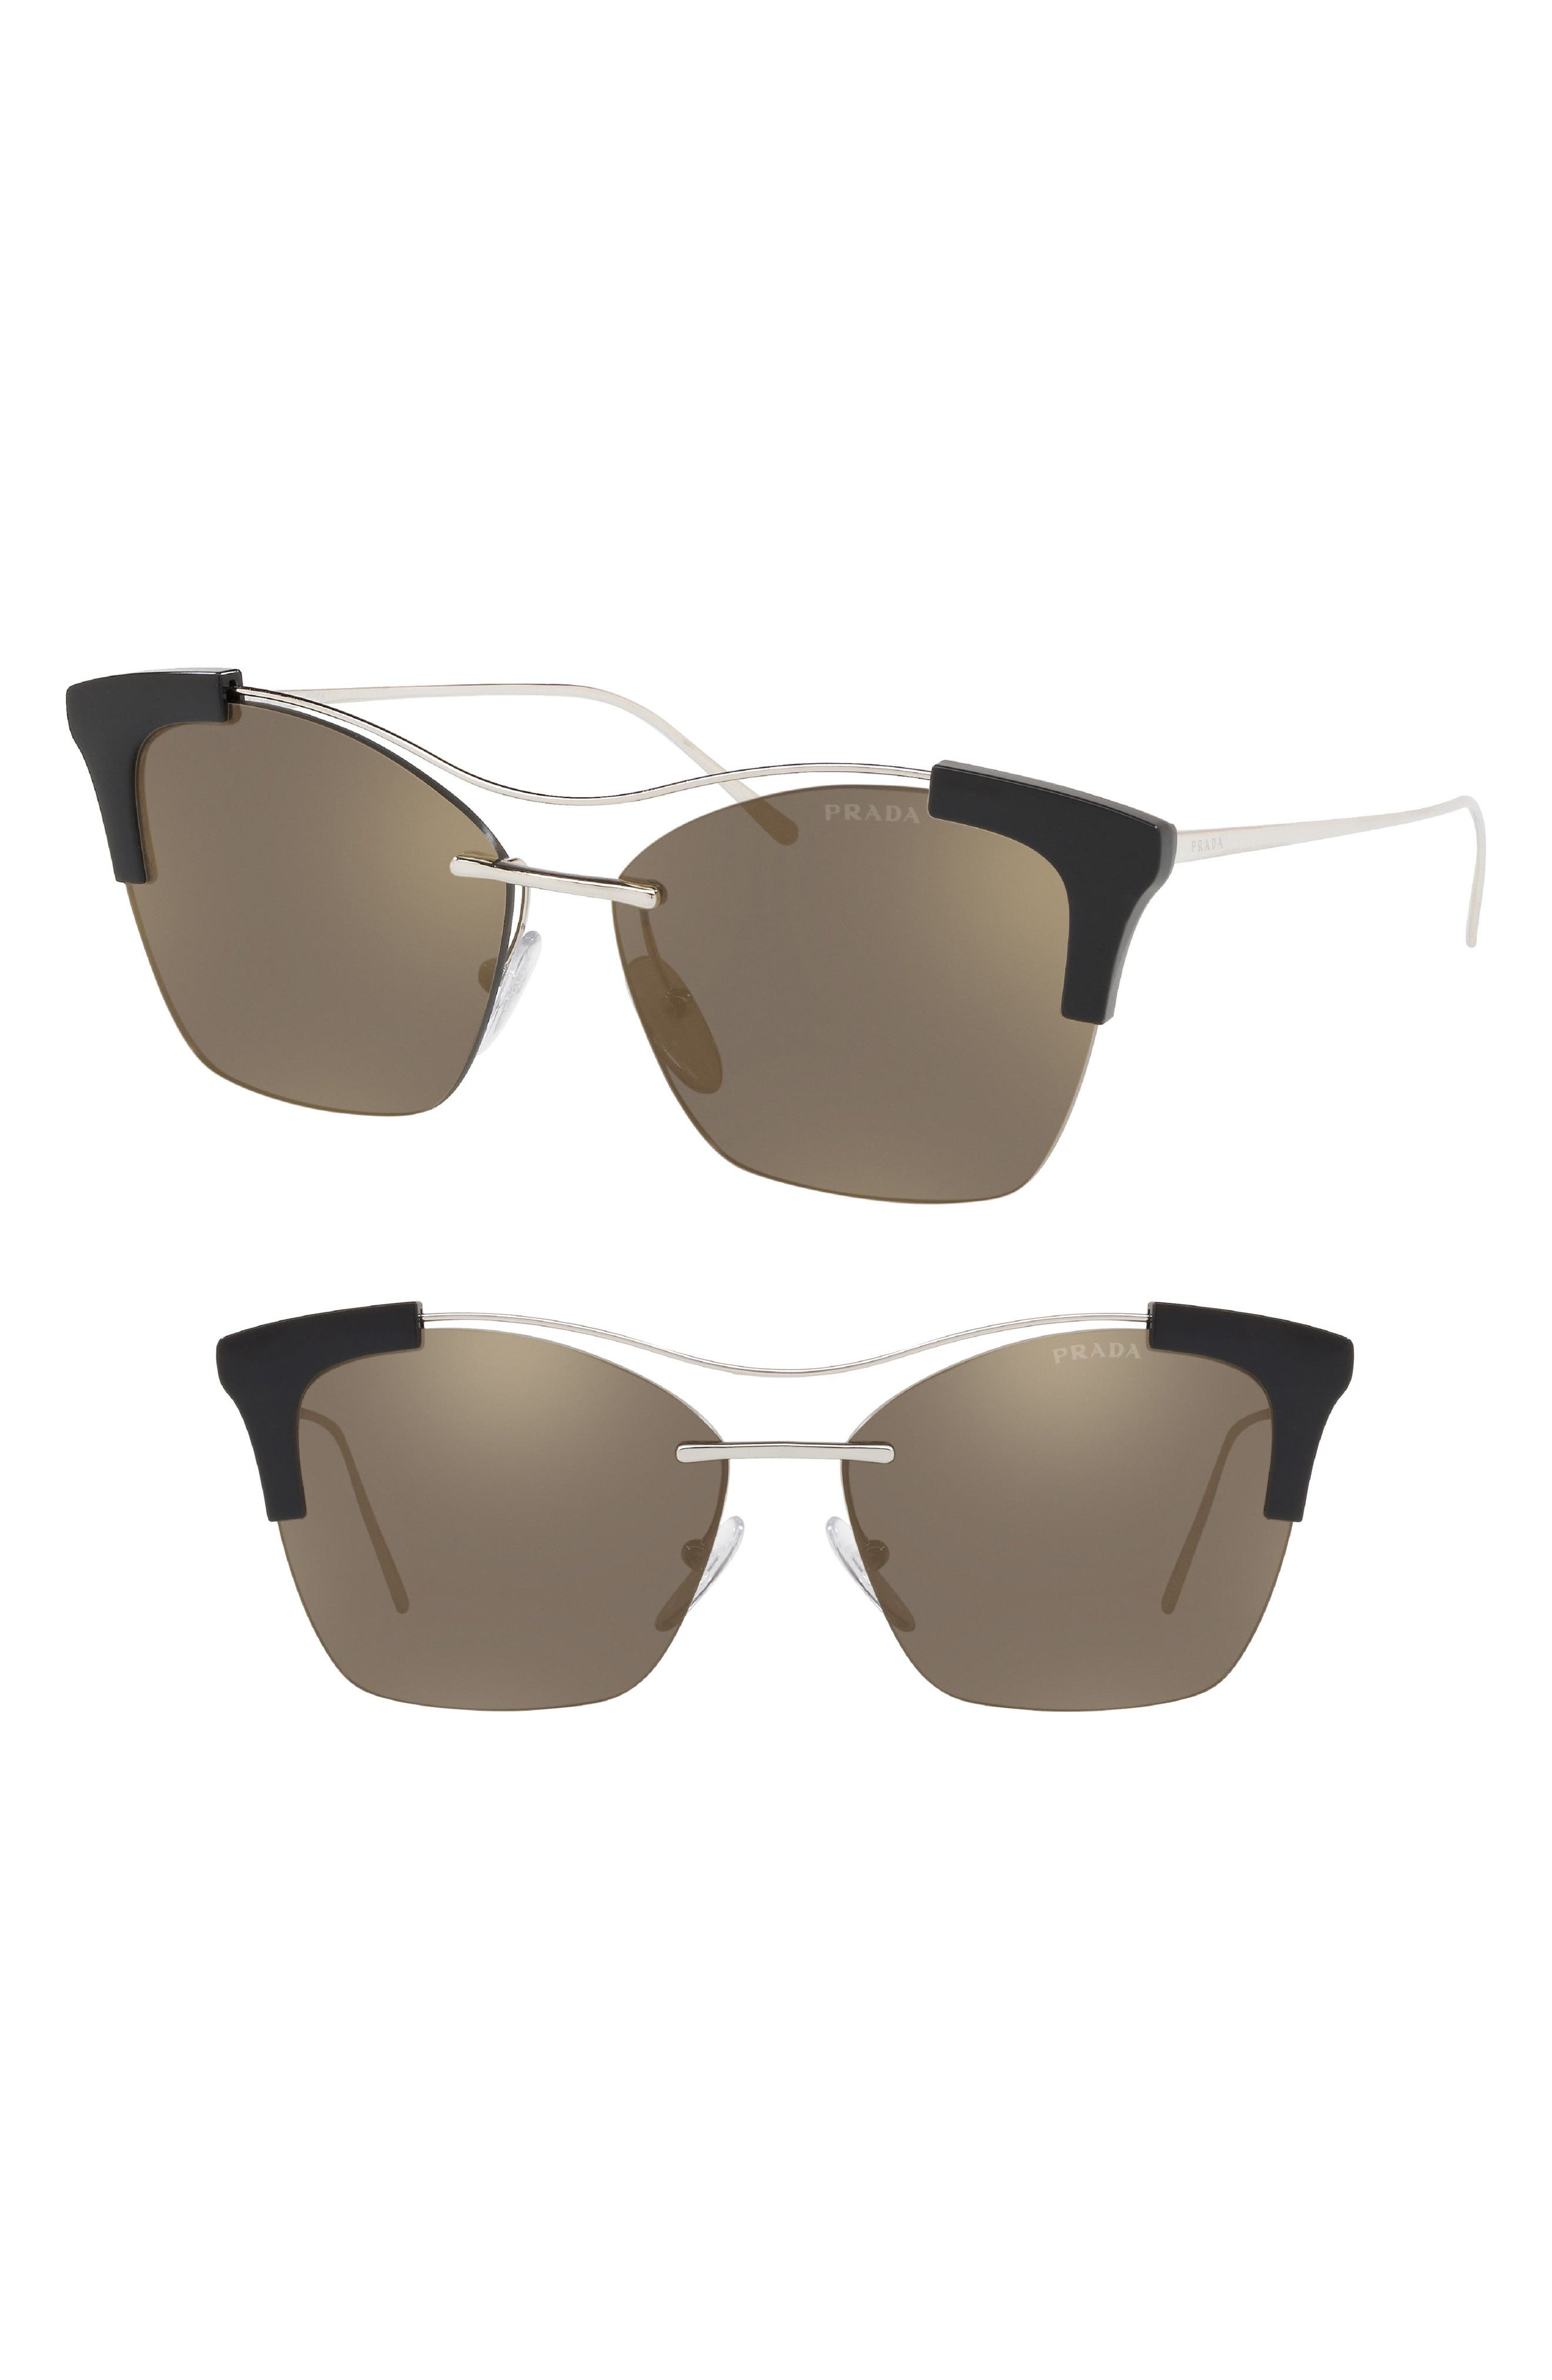 Evolution 57mm Butterfly Sunglasses,                             Main thumbnail 1, color,                             042